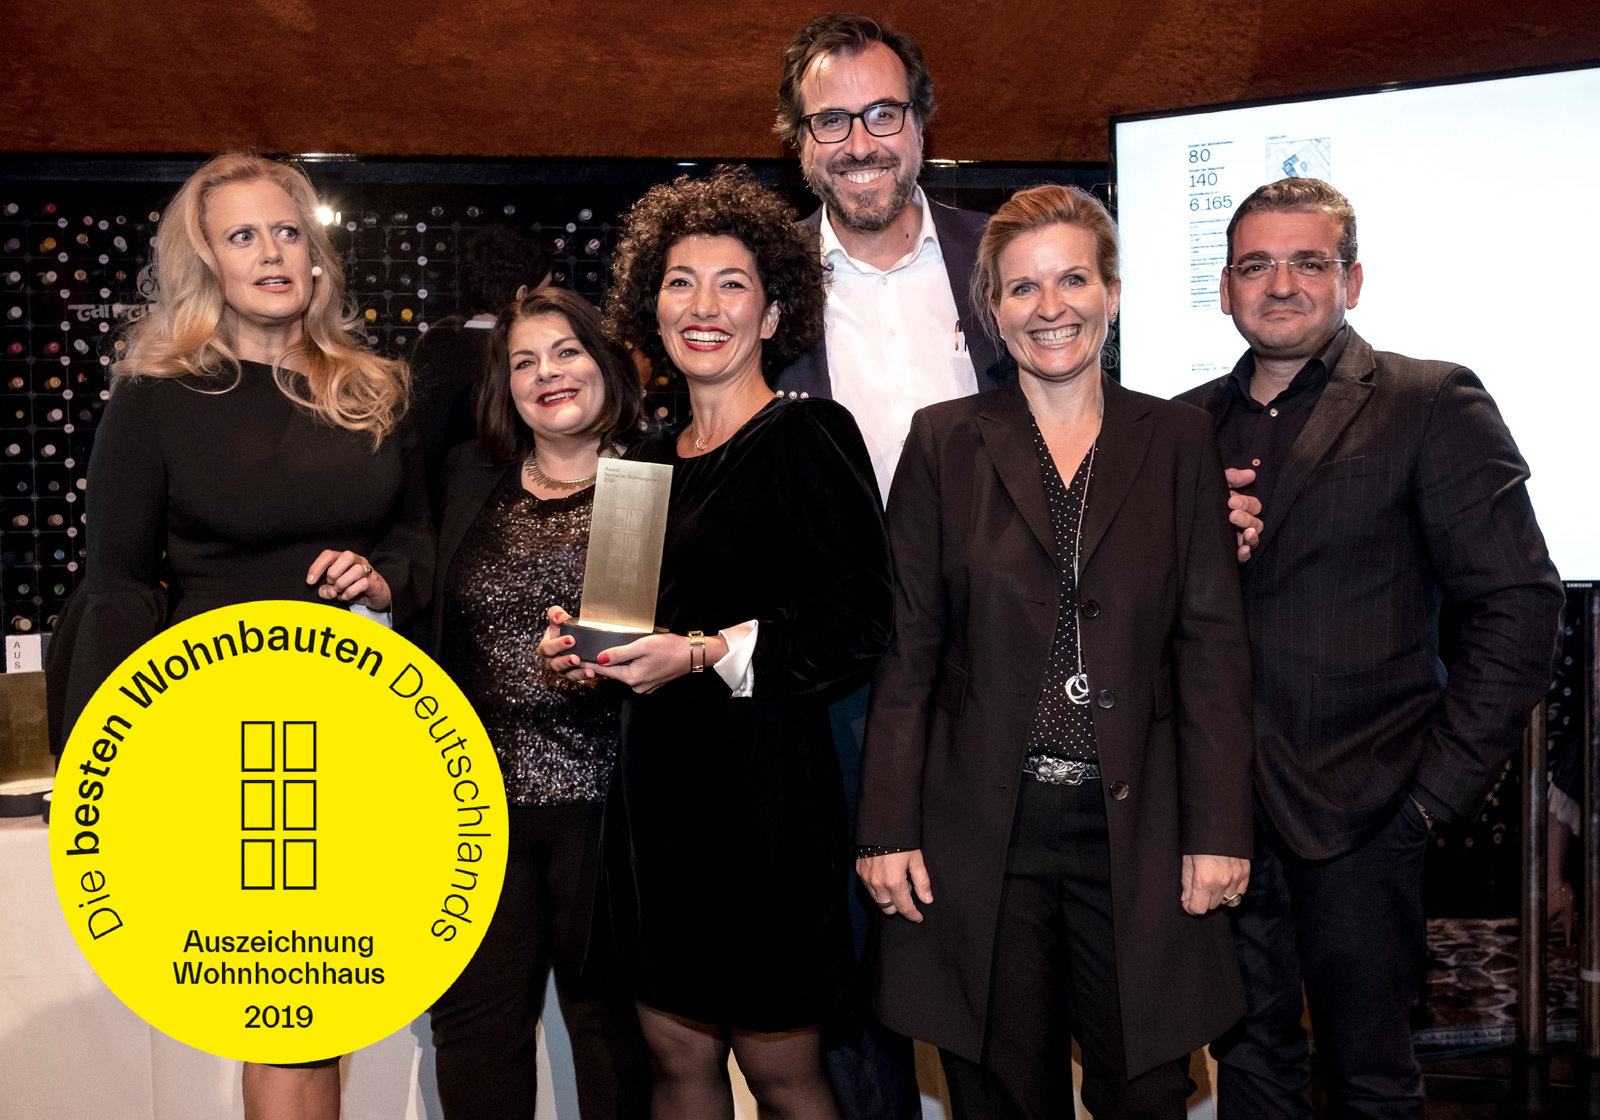 from left: Barbara Schöneberger (moderator), Nicole Nagel (office manager, 6B47), Ershade Shahangi (project leader of the client 6B47), Florian Beck (Head of Design, ATP Munich), Michaela Hauser (CEO, ATP Munich), and Andre Lyashenko (project leader, ATP Munich) at the award ceremony. Photo: Callwey Verlag